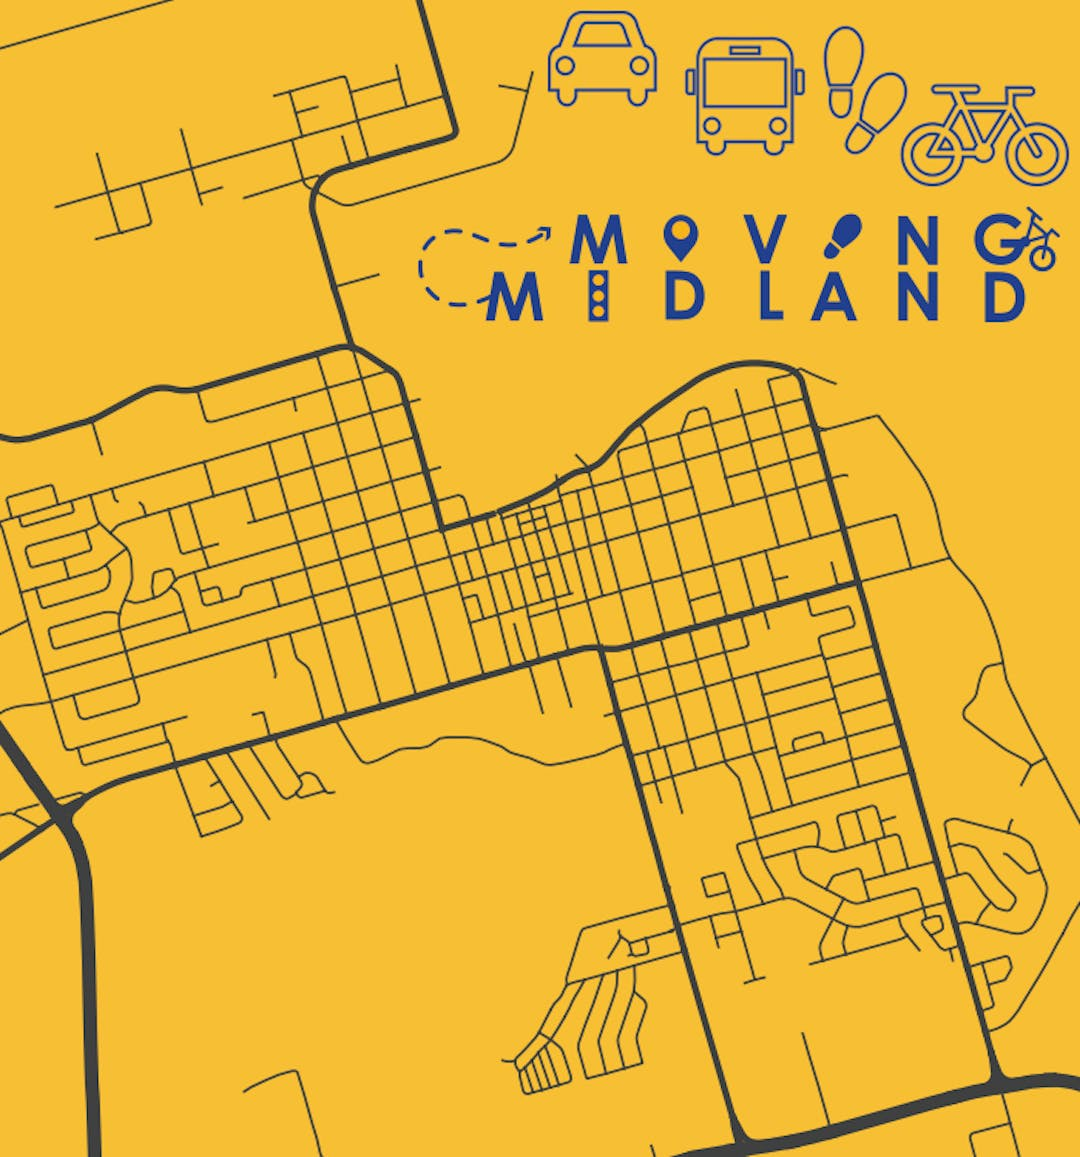 A map of the streets in Midland with different transportation logos (car, bus, footsteps, bicycle) above a logo that says Moving Midland.